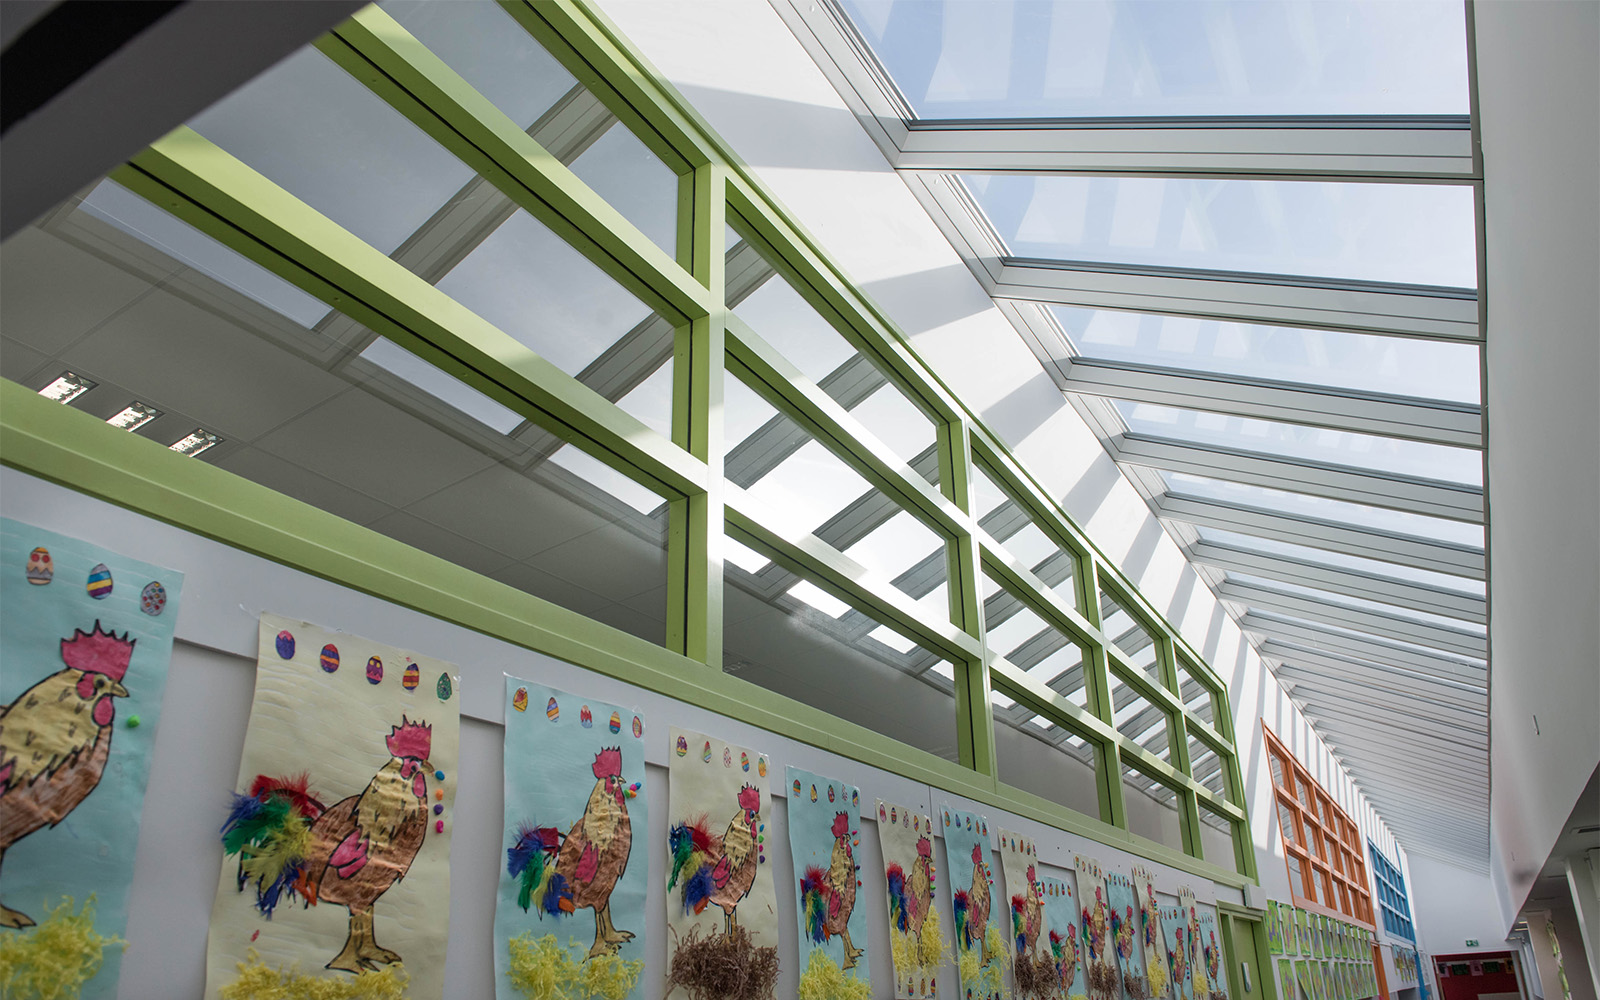 Architectural acoustics for an effective learning environment